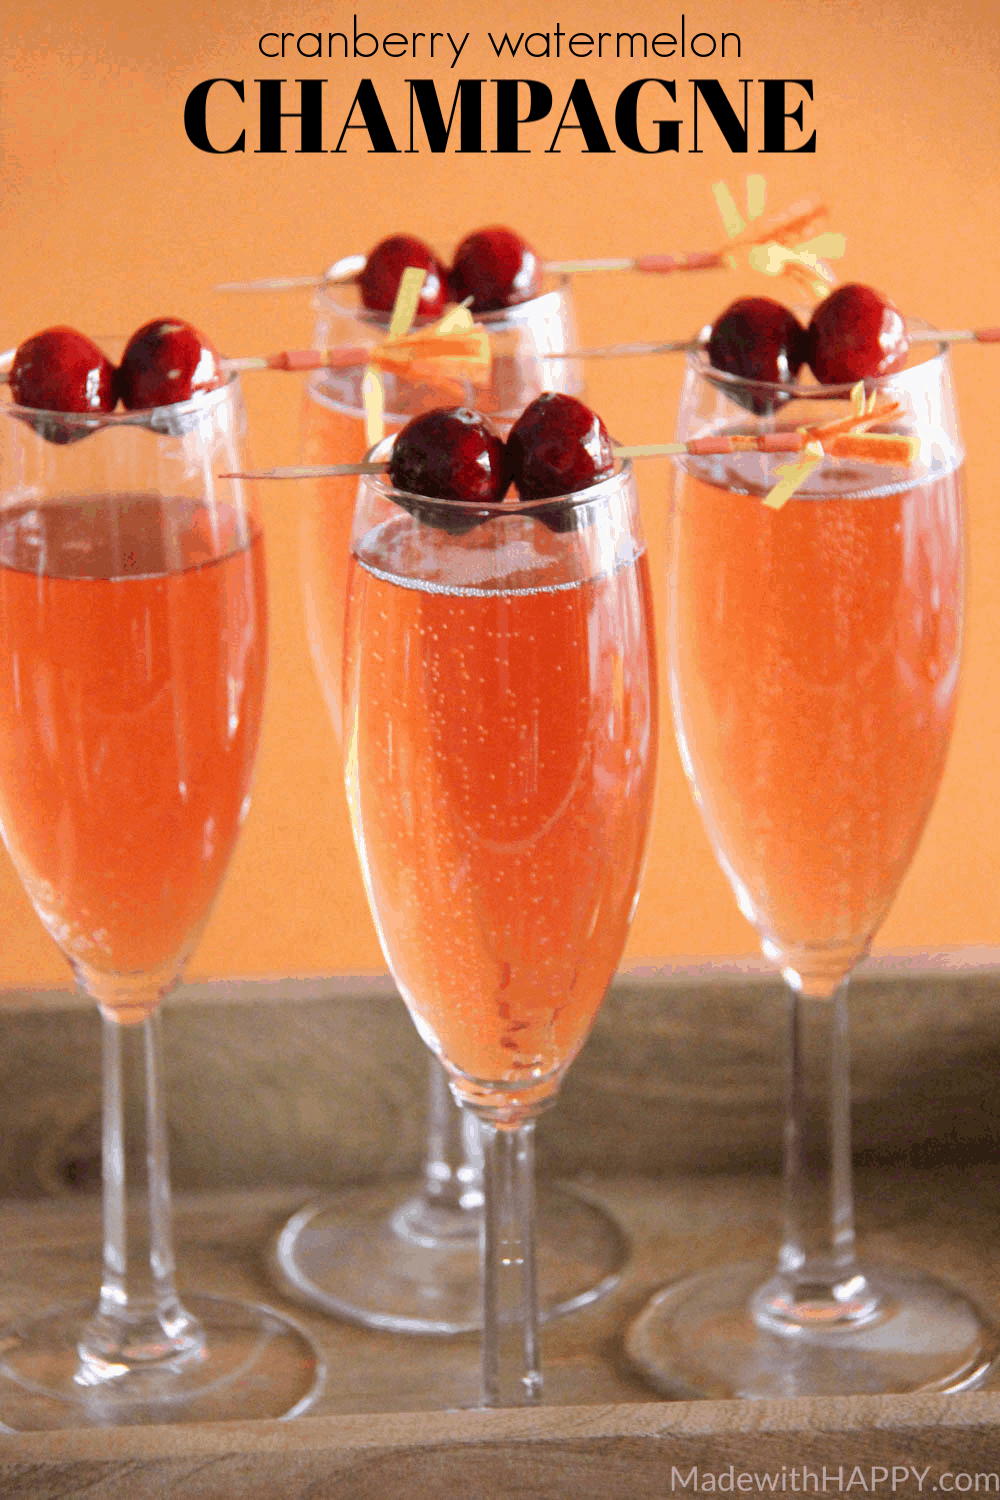 Fall Cocktail Idea. Cranberry Watermelon Champagne Cocktail | Holiday Cocktails | Cranberry Cocktails | Champagne Cocktails | www.madewithhappy.com